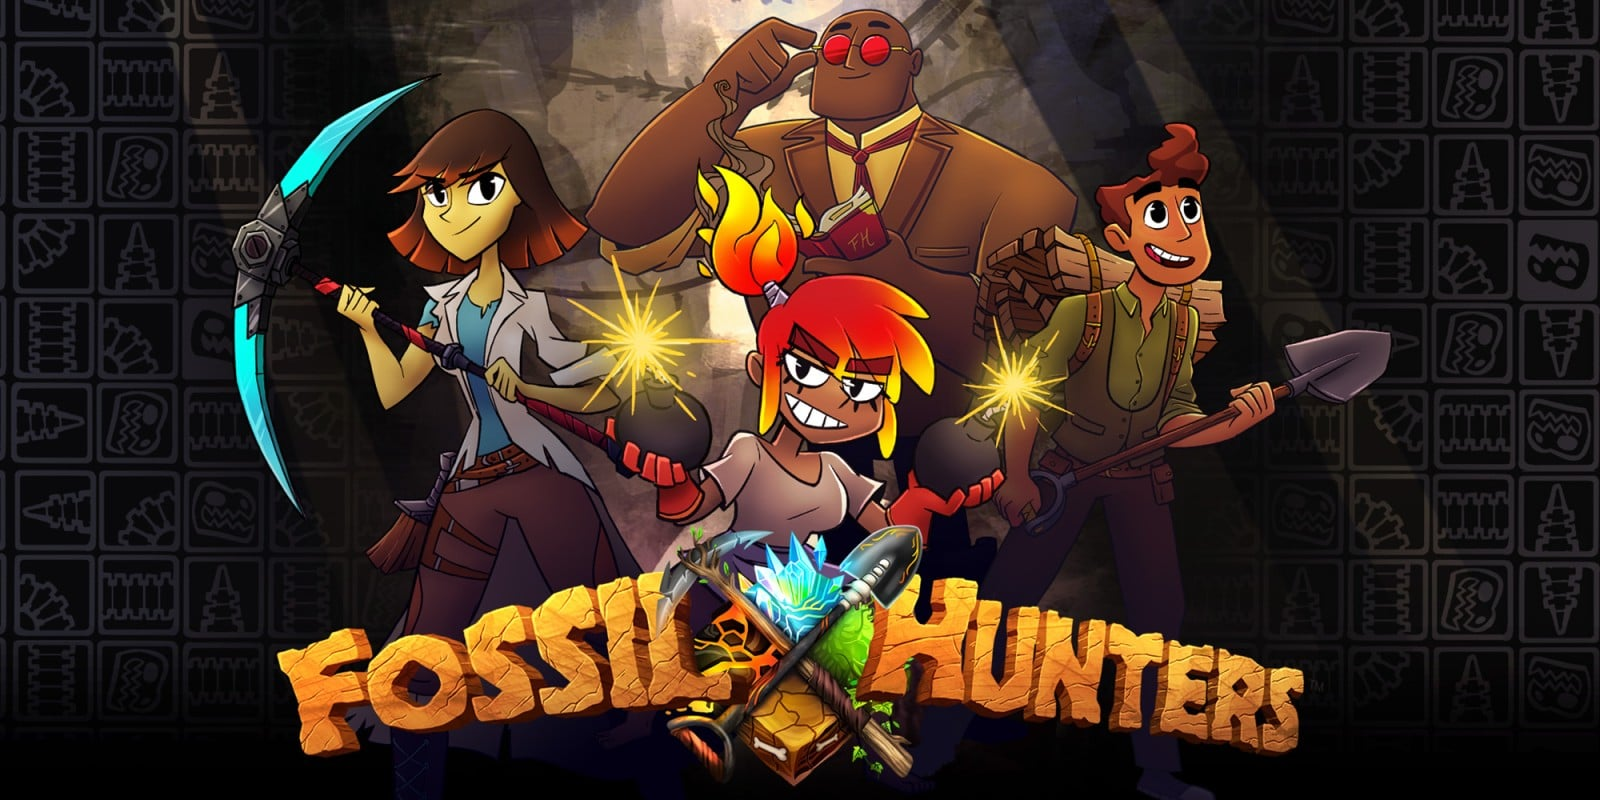 Fossil Hunters launch trailer